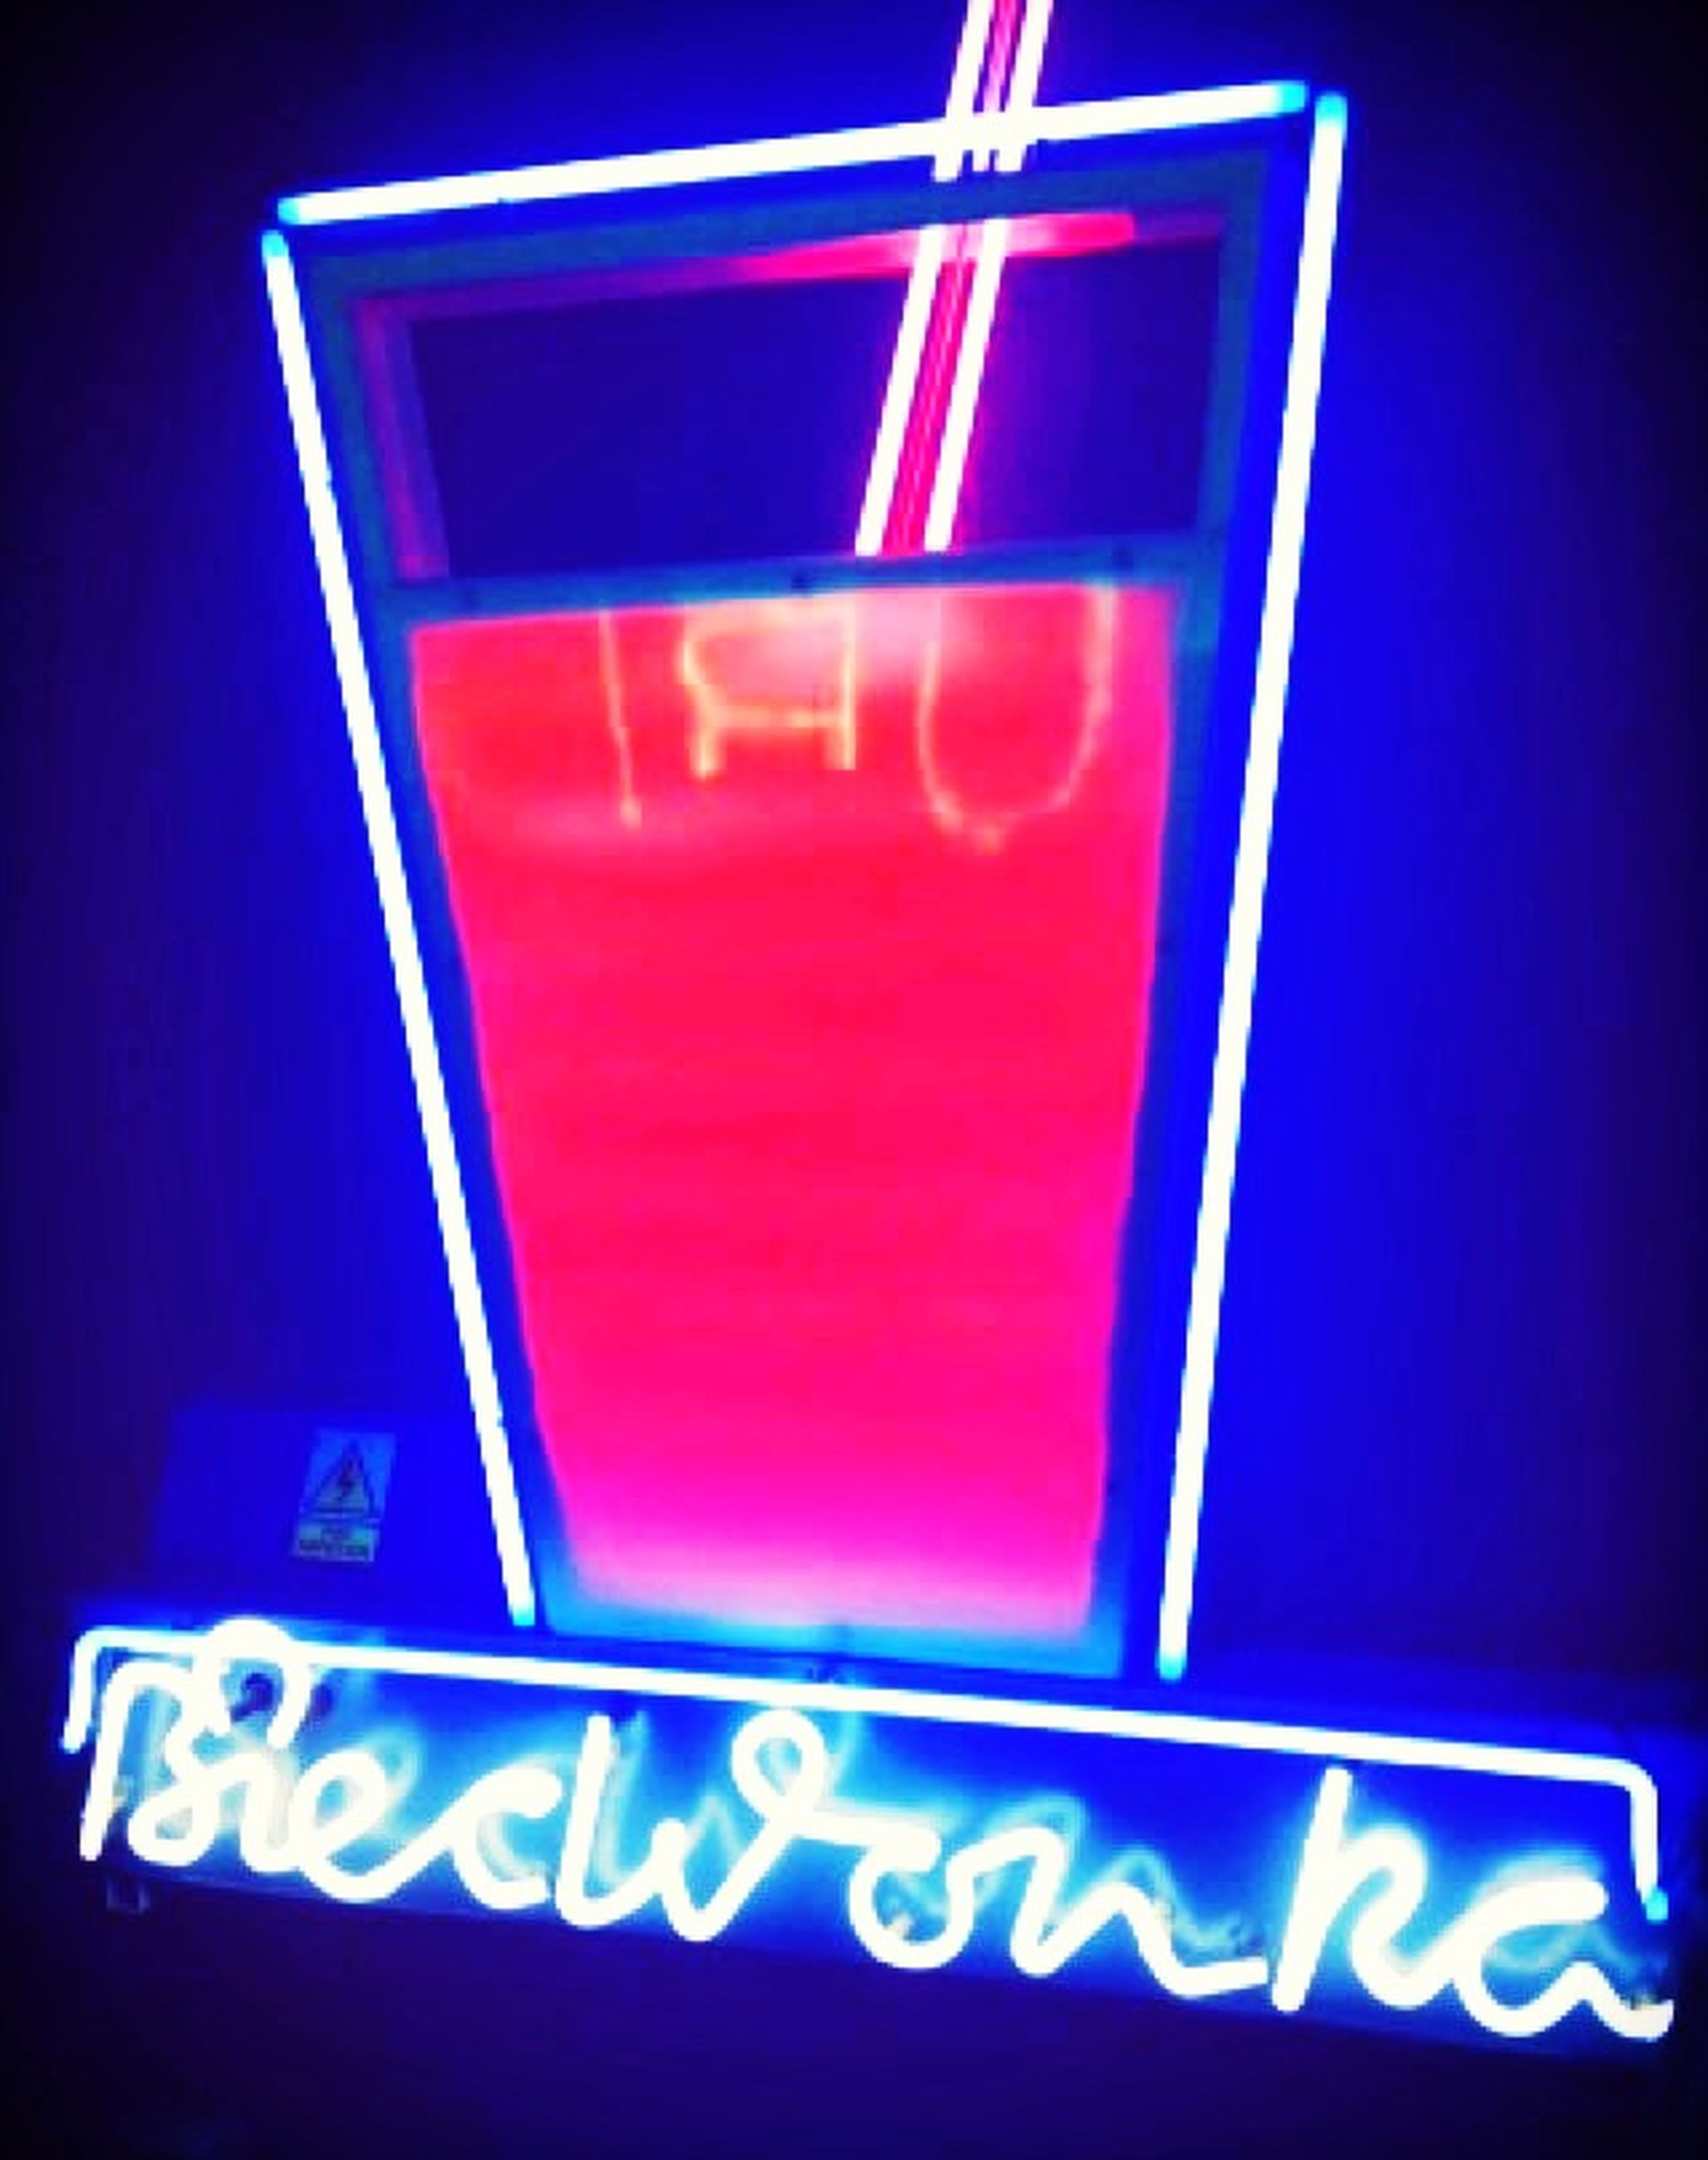 communication, text, western script, indoors, red, close-up, illuminated, capital letter, low angle view, neon, number, sign, guidance, no people, information sign, information, blue, lighting equipment, night, symbol